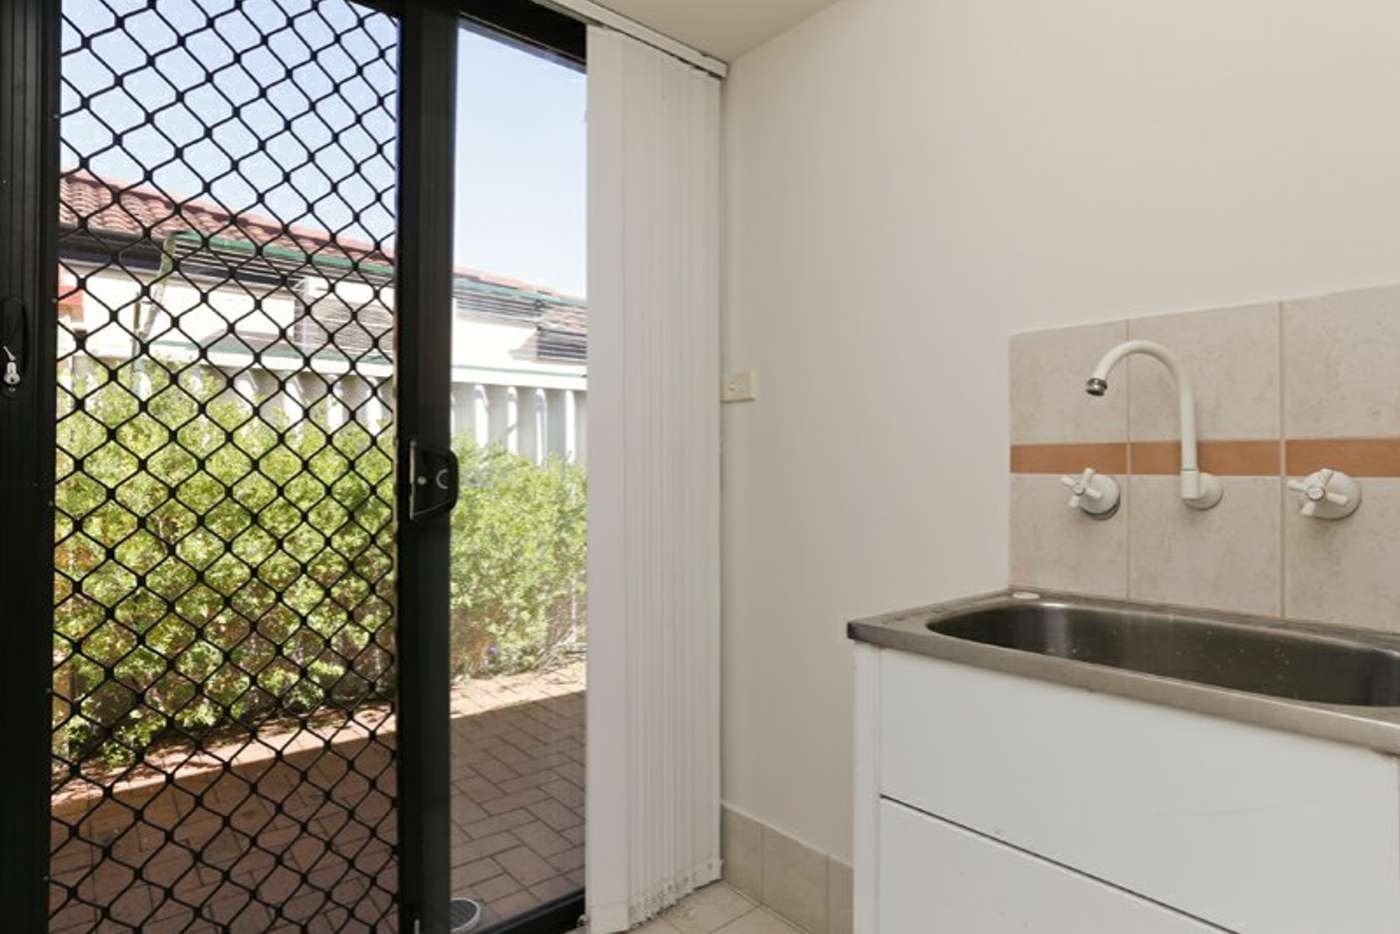 Sixth view of Homely villa listing, 4G Ball Place, Queens Park WA 6107